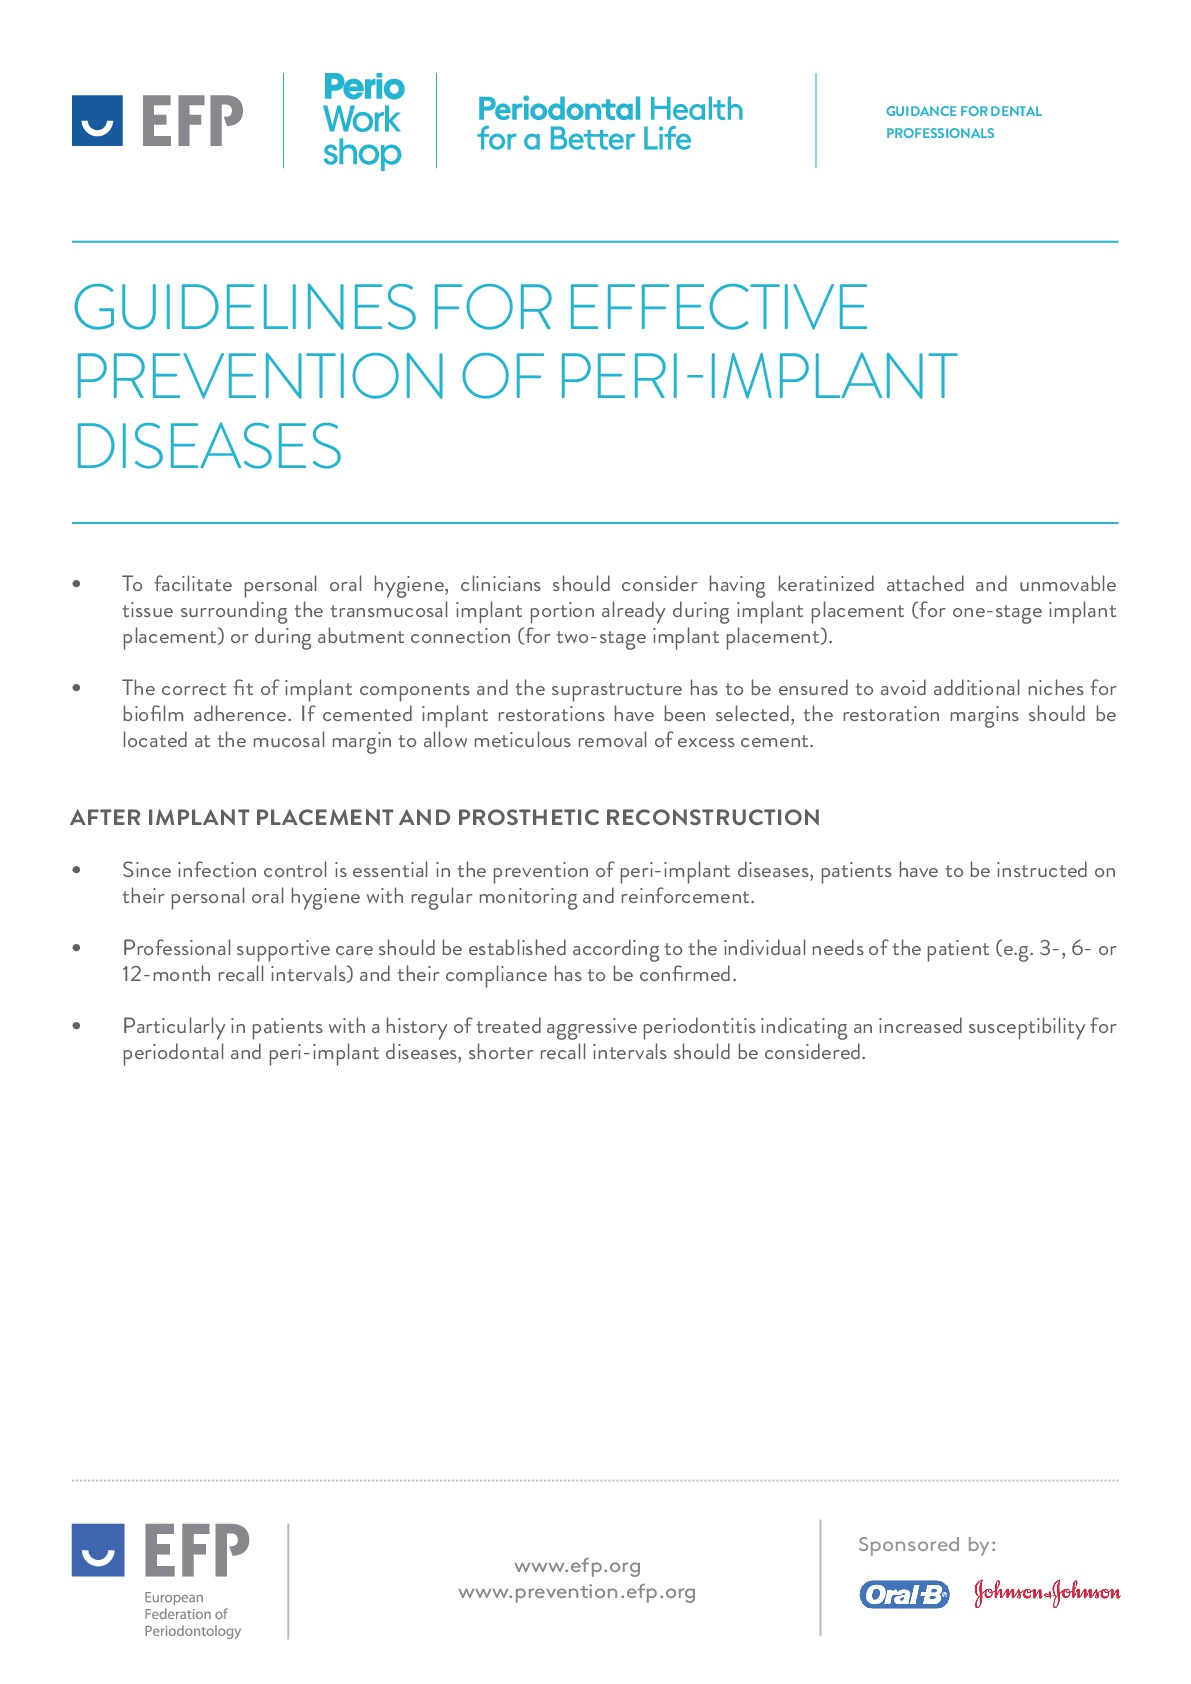 Prevention-of-peri-implant-diseases-guidance-for-dental-professionals-(1)-003